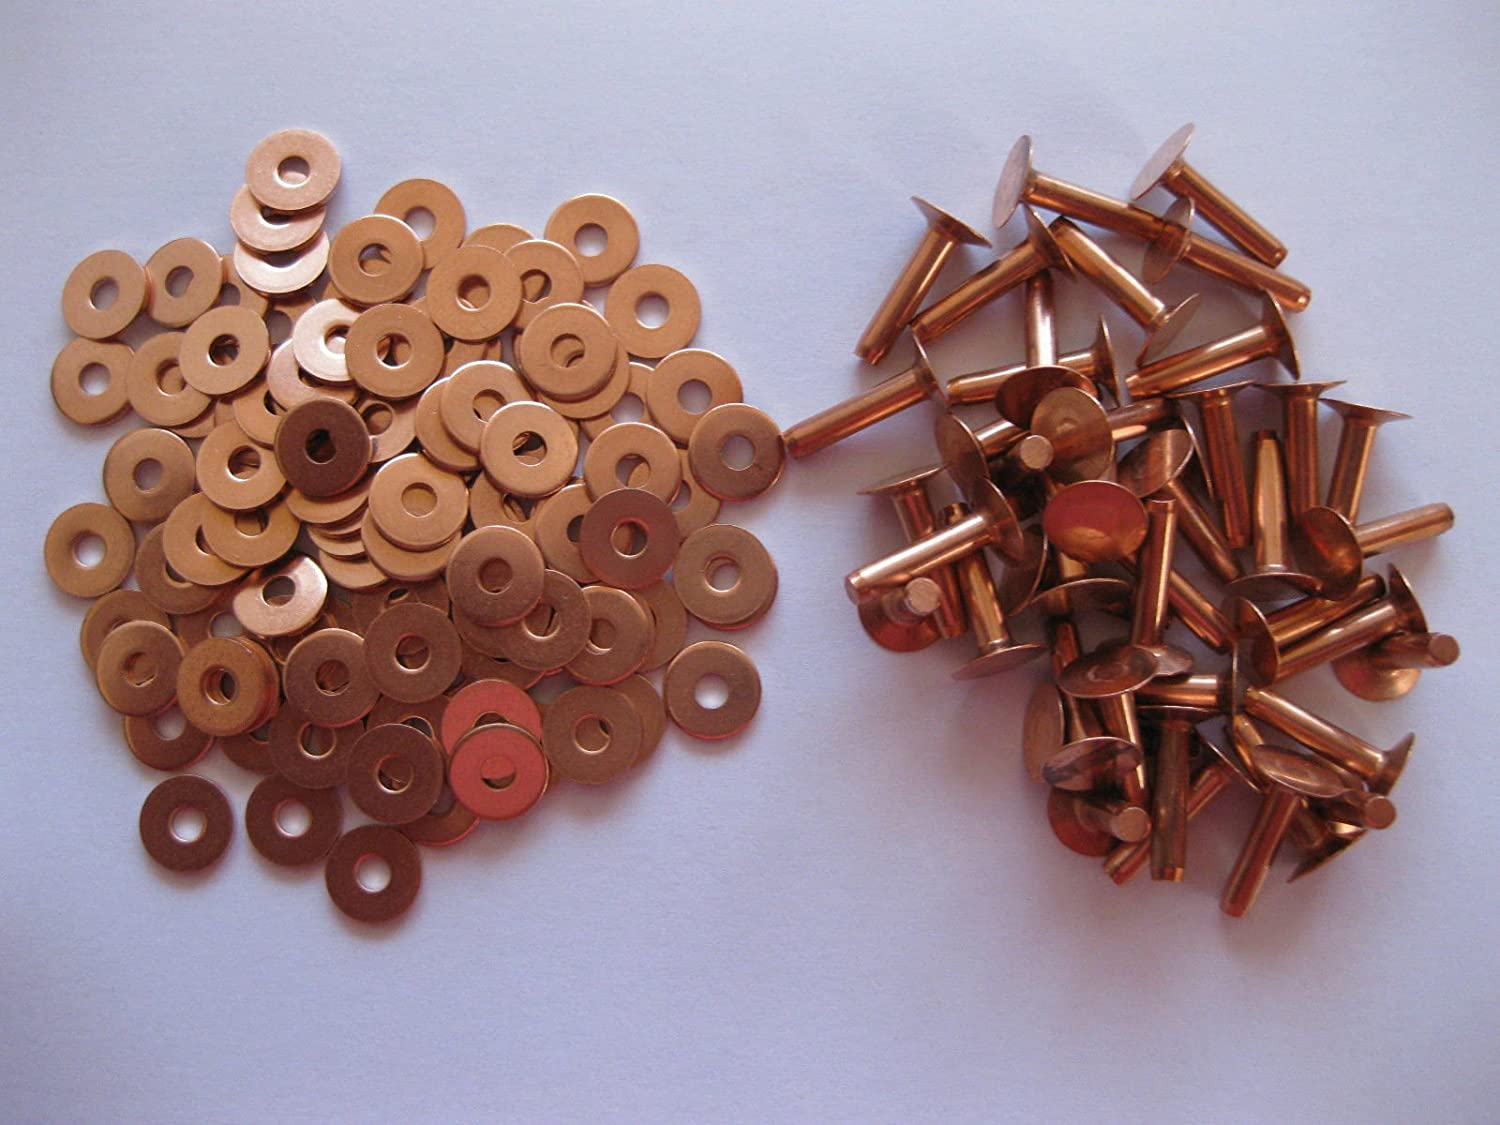 Copper hose saddlers rivets 10 Gauge x 3/4 with washers leather belt bag crafts, number in pack 100